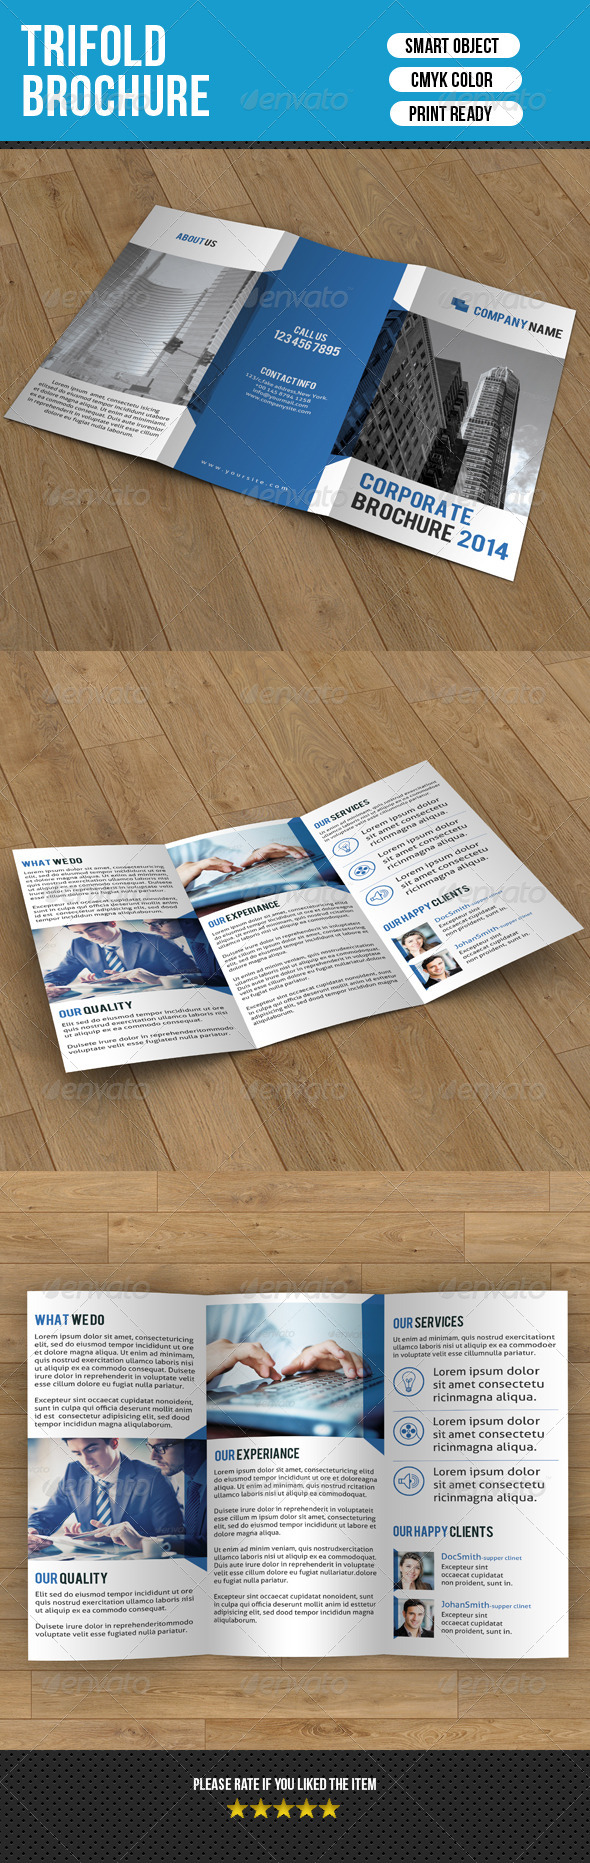 Trifold Business Brochure-V04